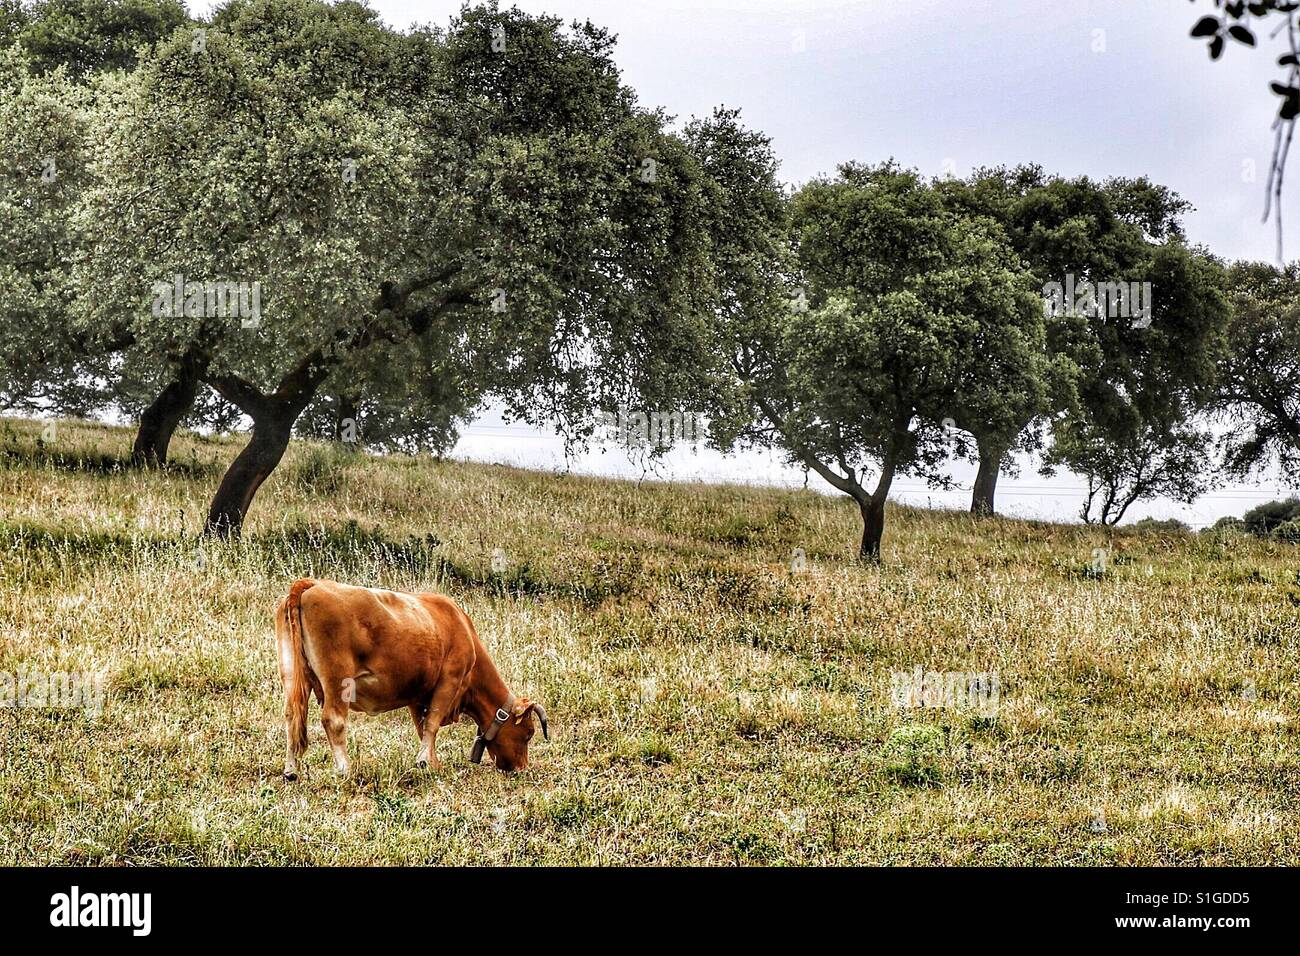 Cow in the pasture with some trees. Alentejo, Portugal. - Stock Image